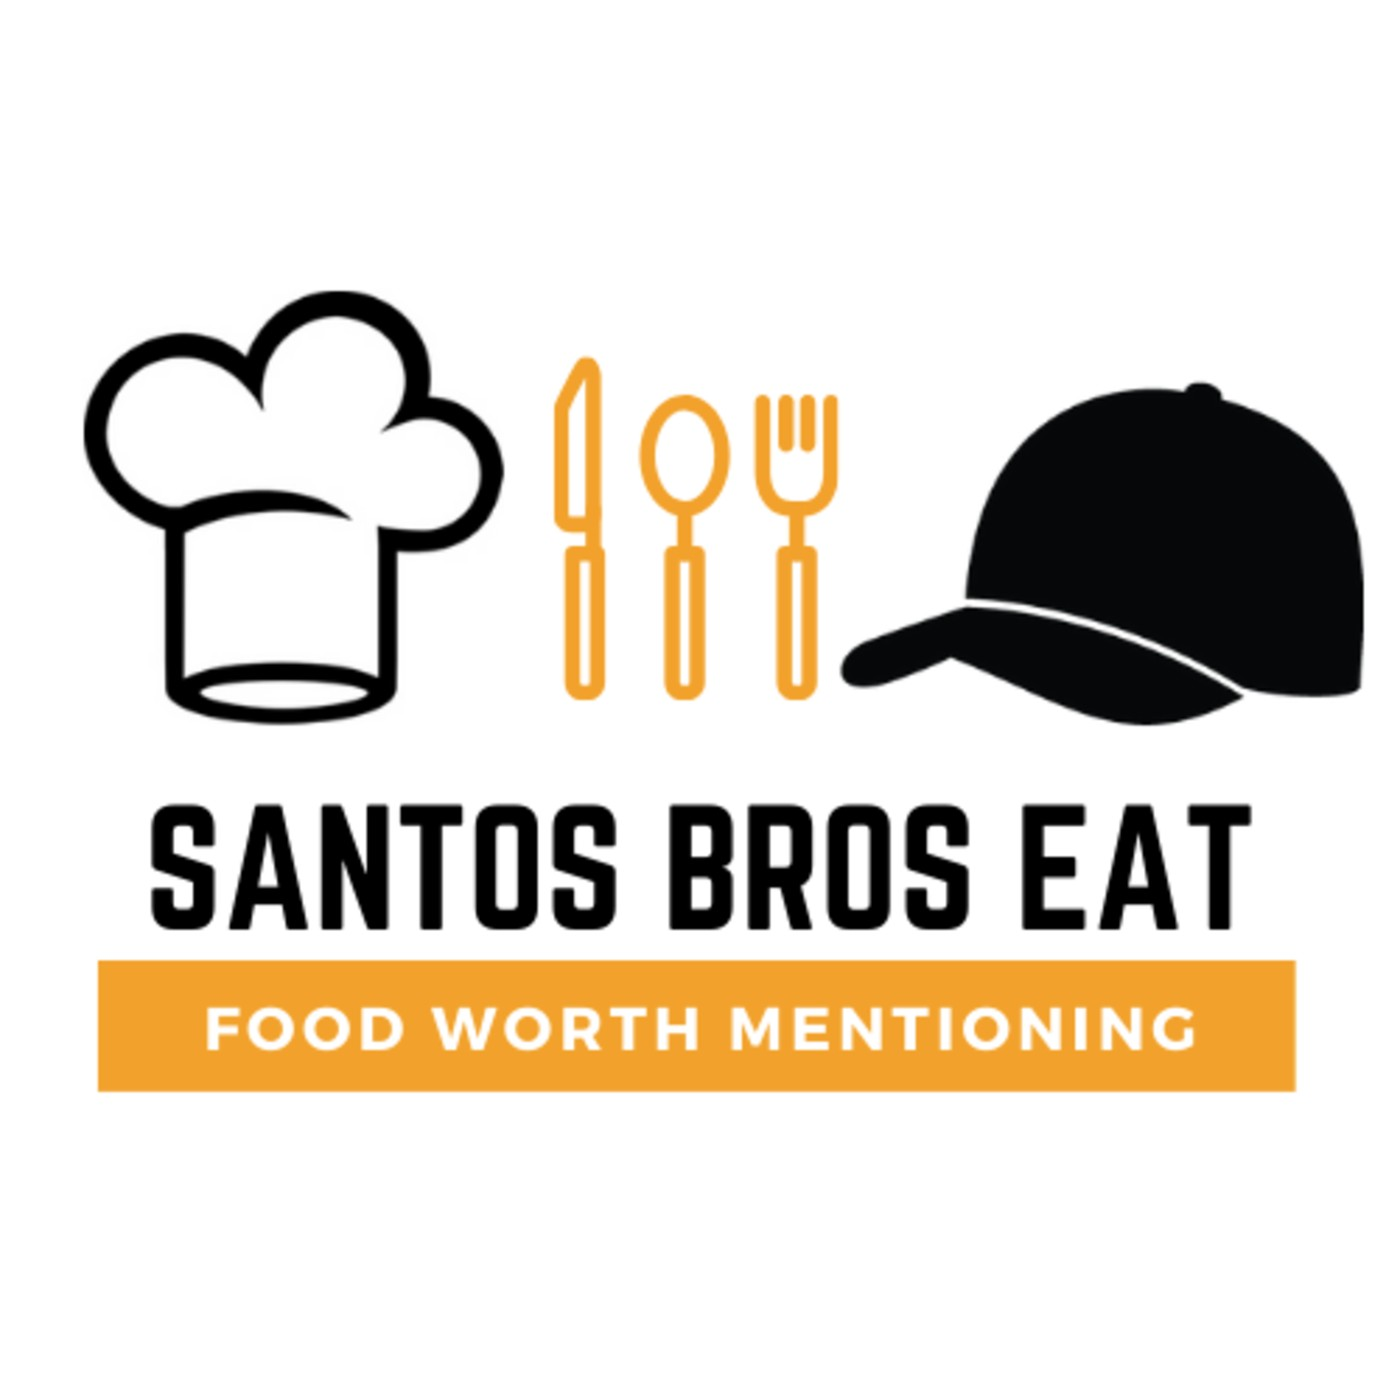 Santos Bros Eat:  Food Worth Mentioning